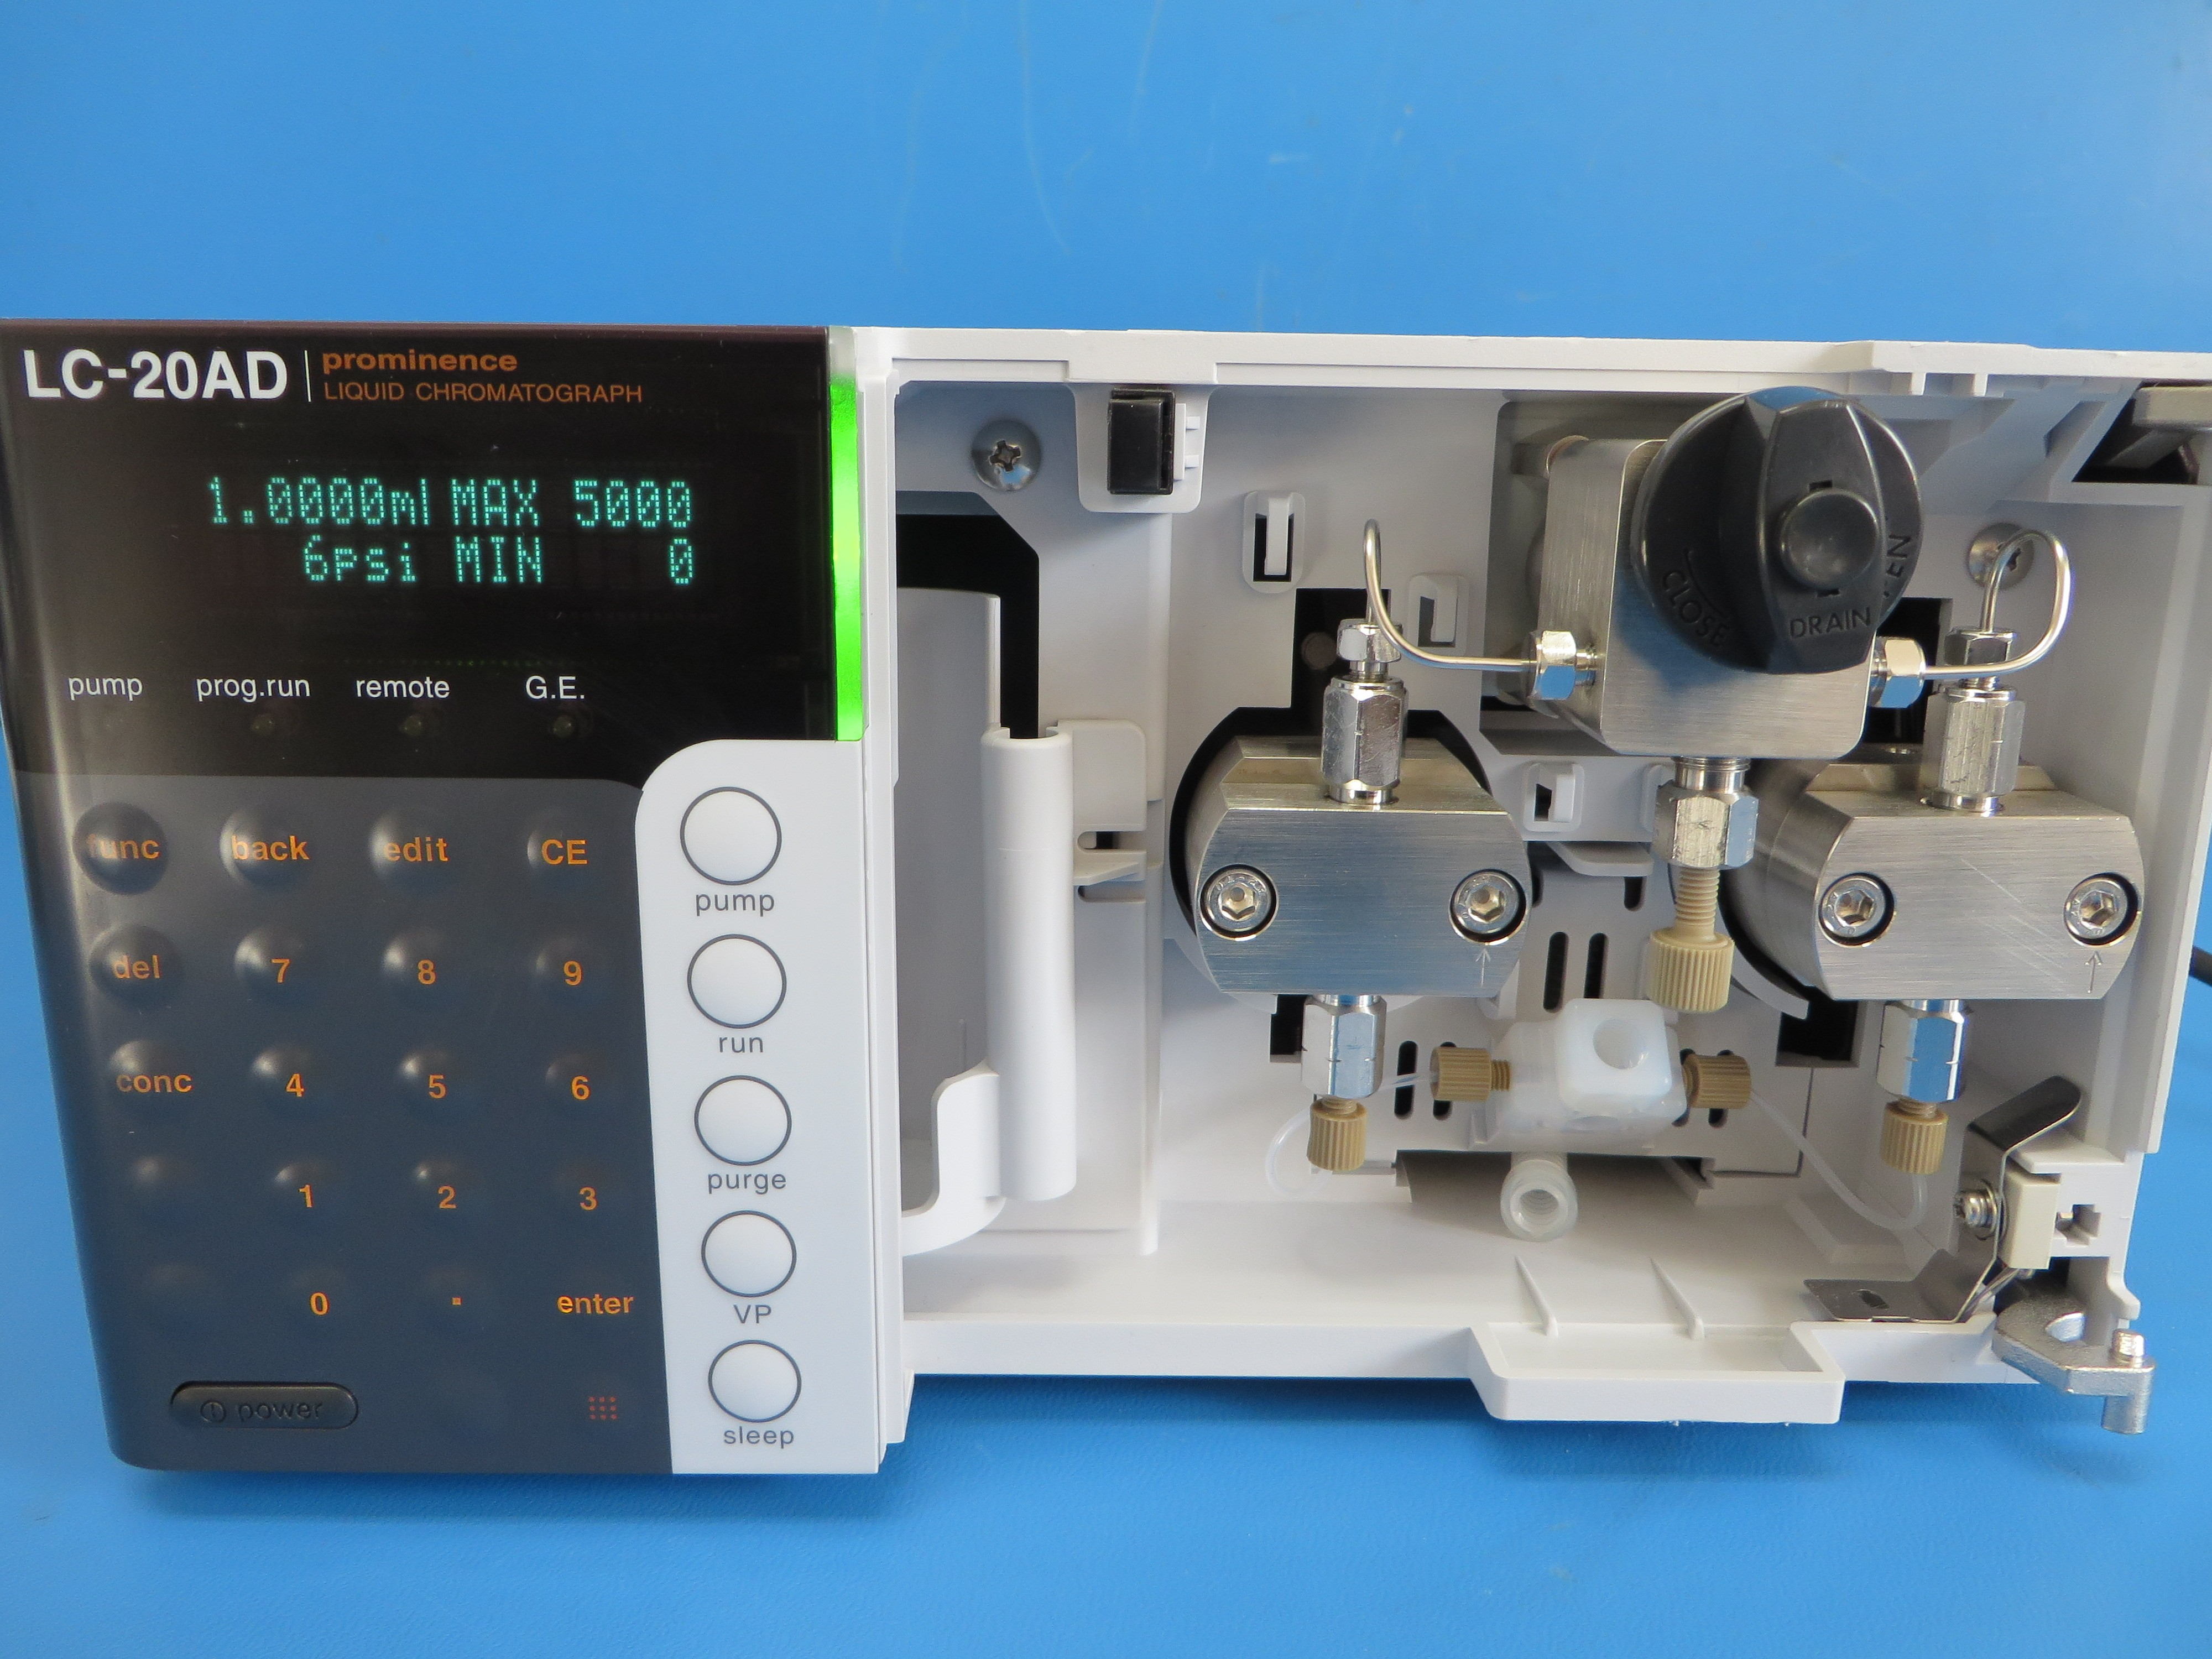 Shimadzu LC-20AD Prominence HPLC Pump part# 228-45000-32 - Missing